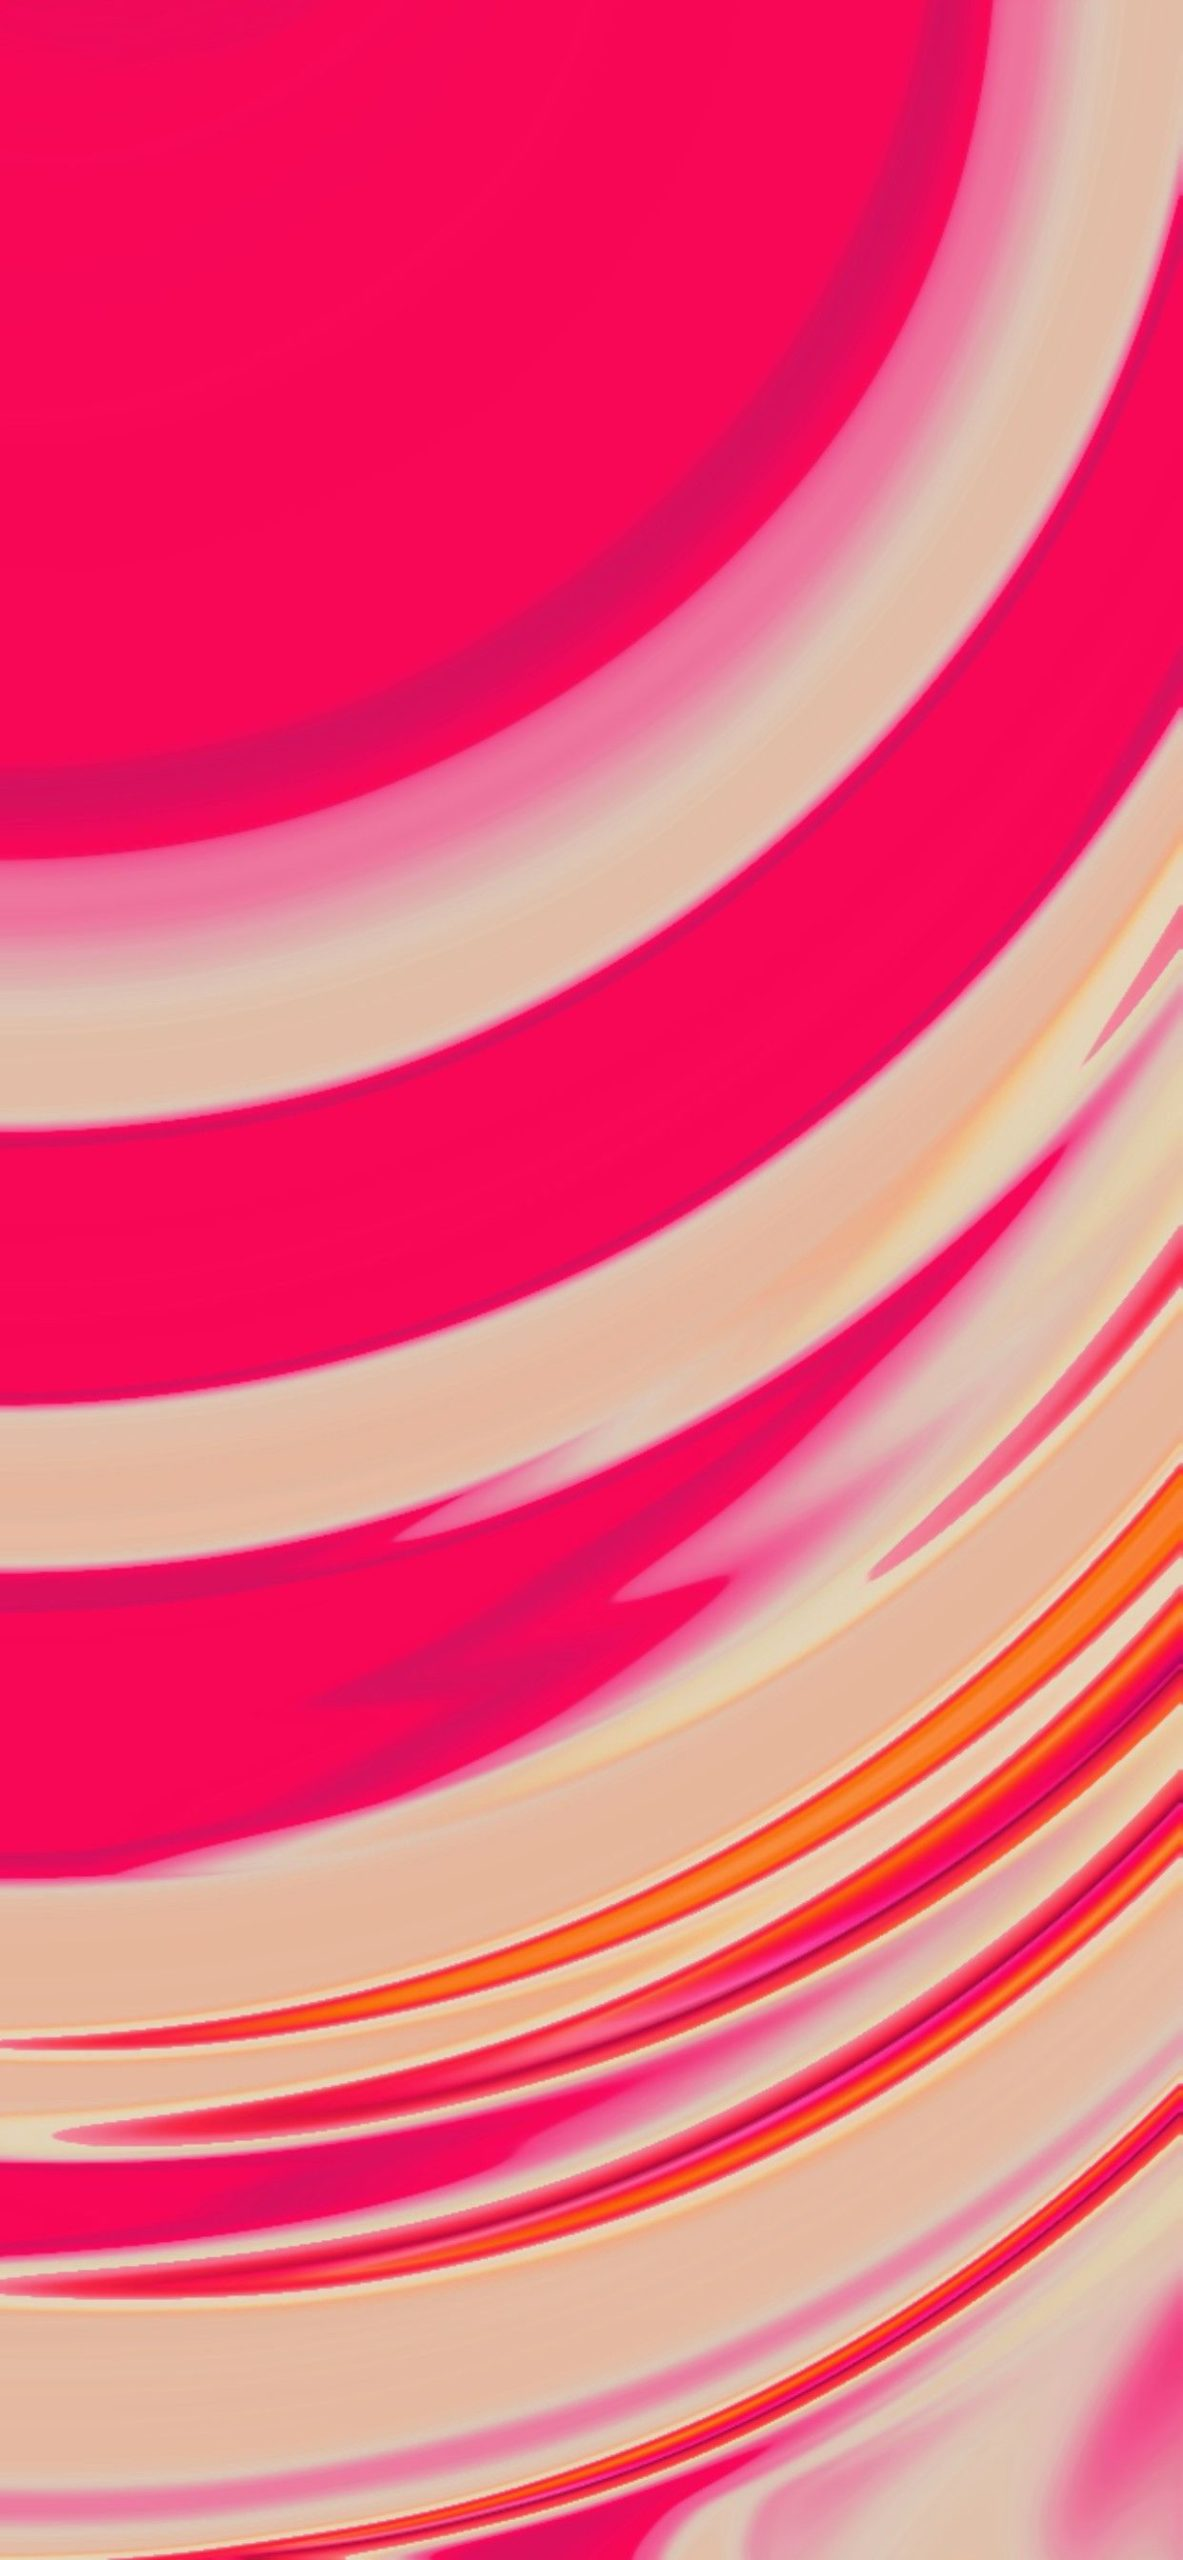 Motorola Moto G6 Plus Abstract UHD Wallpapers Collection